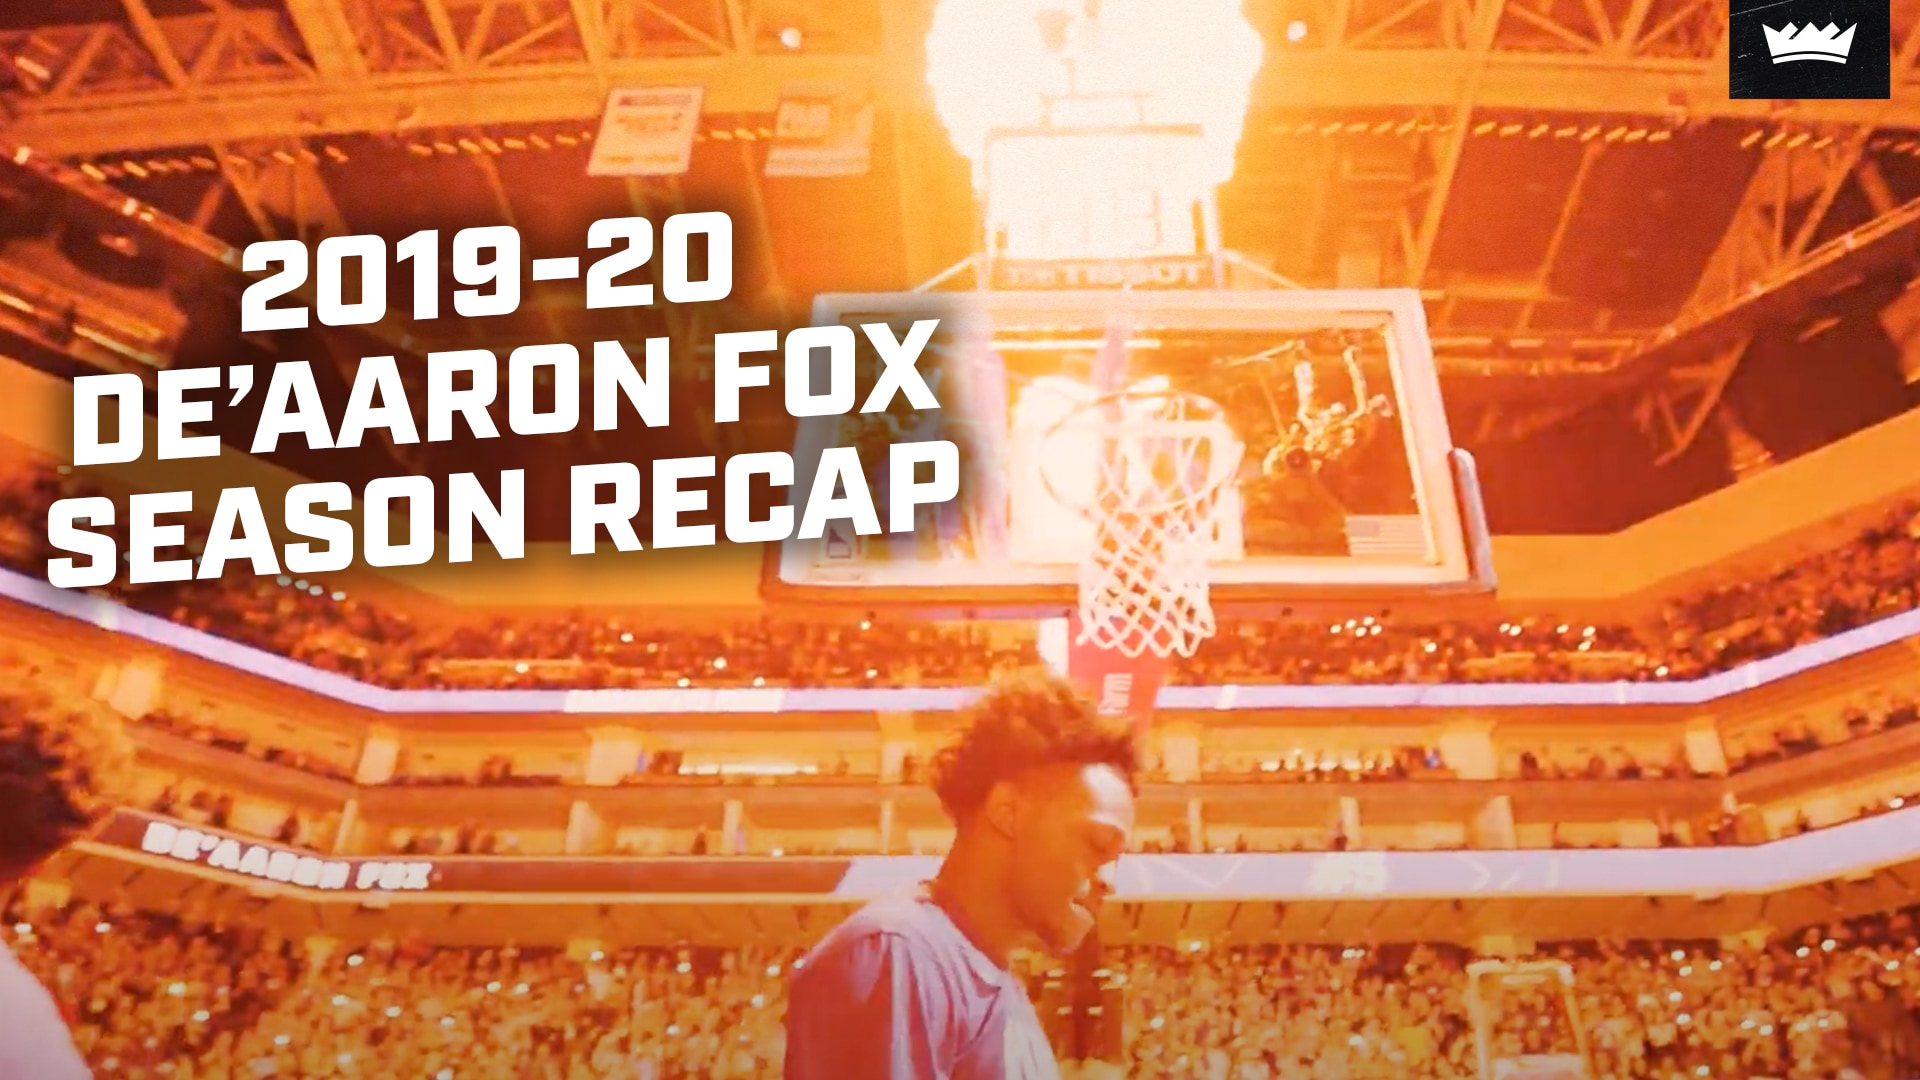 De'Aaron Fox 2019-20 Season Recap